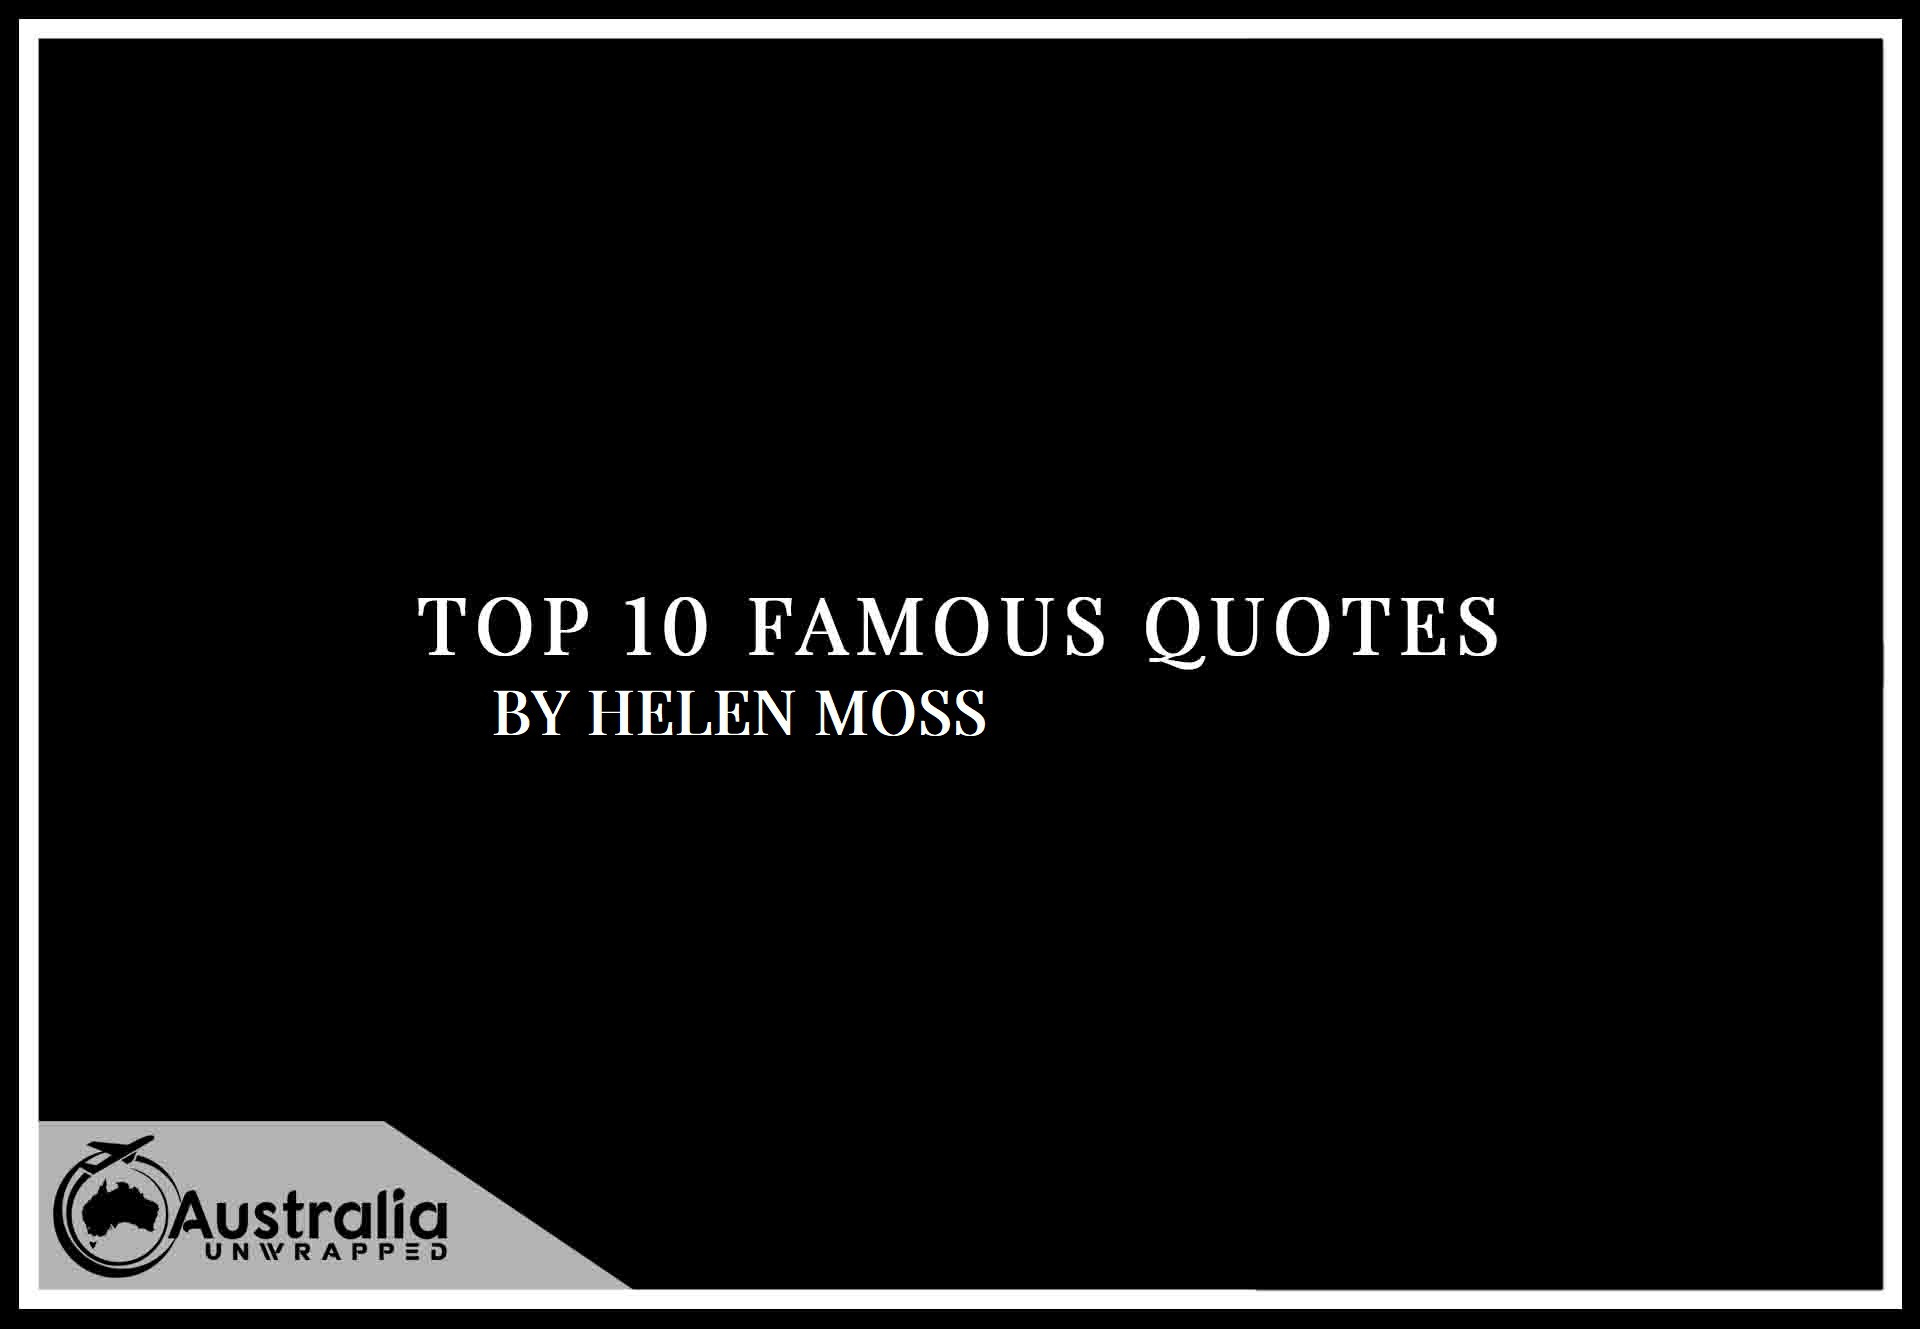 Top 10 Famous Quotes by Author Helen Moss